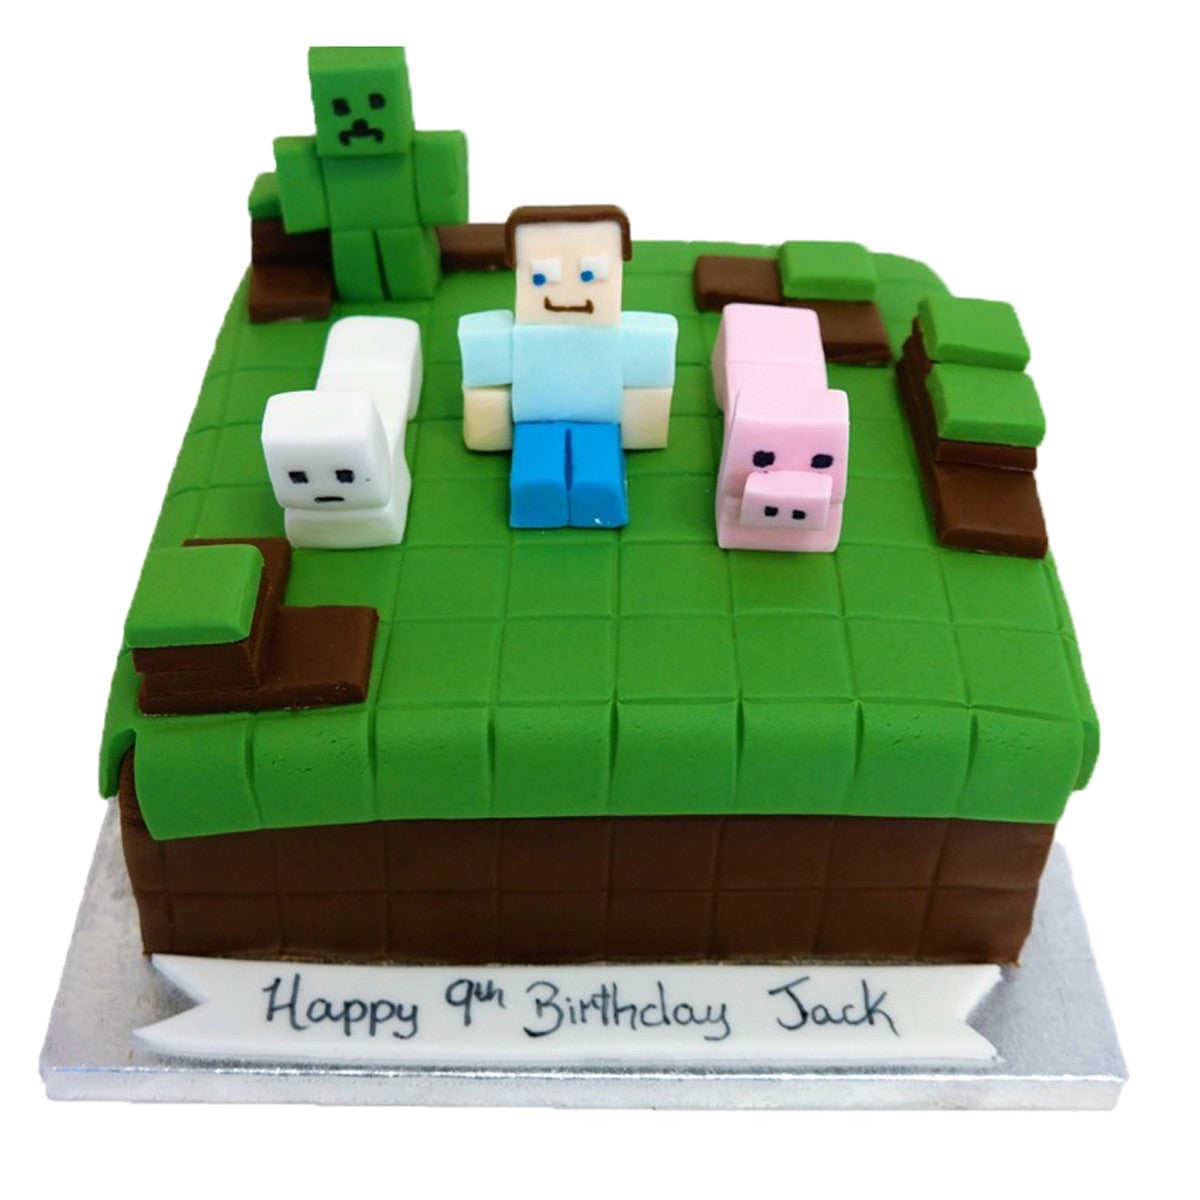 Minecraft Cake Buy Online Free UK Delivery New Cakes